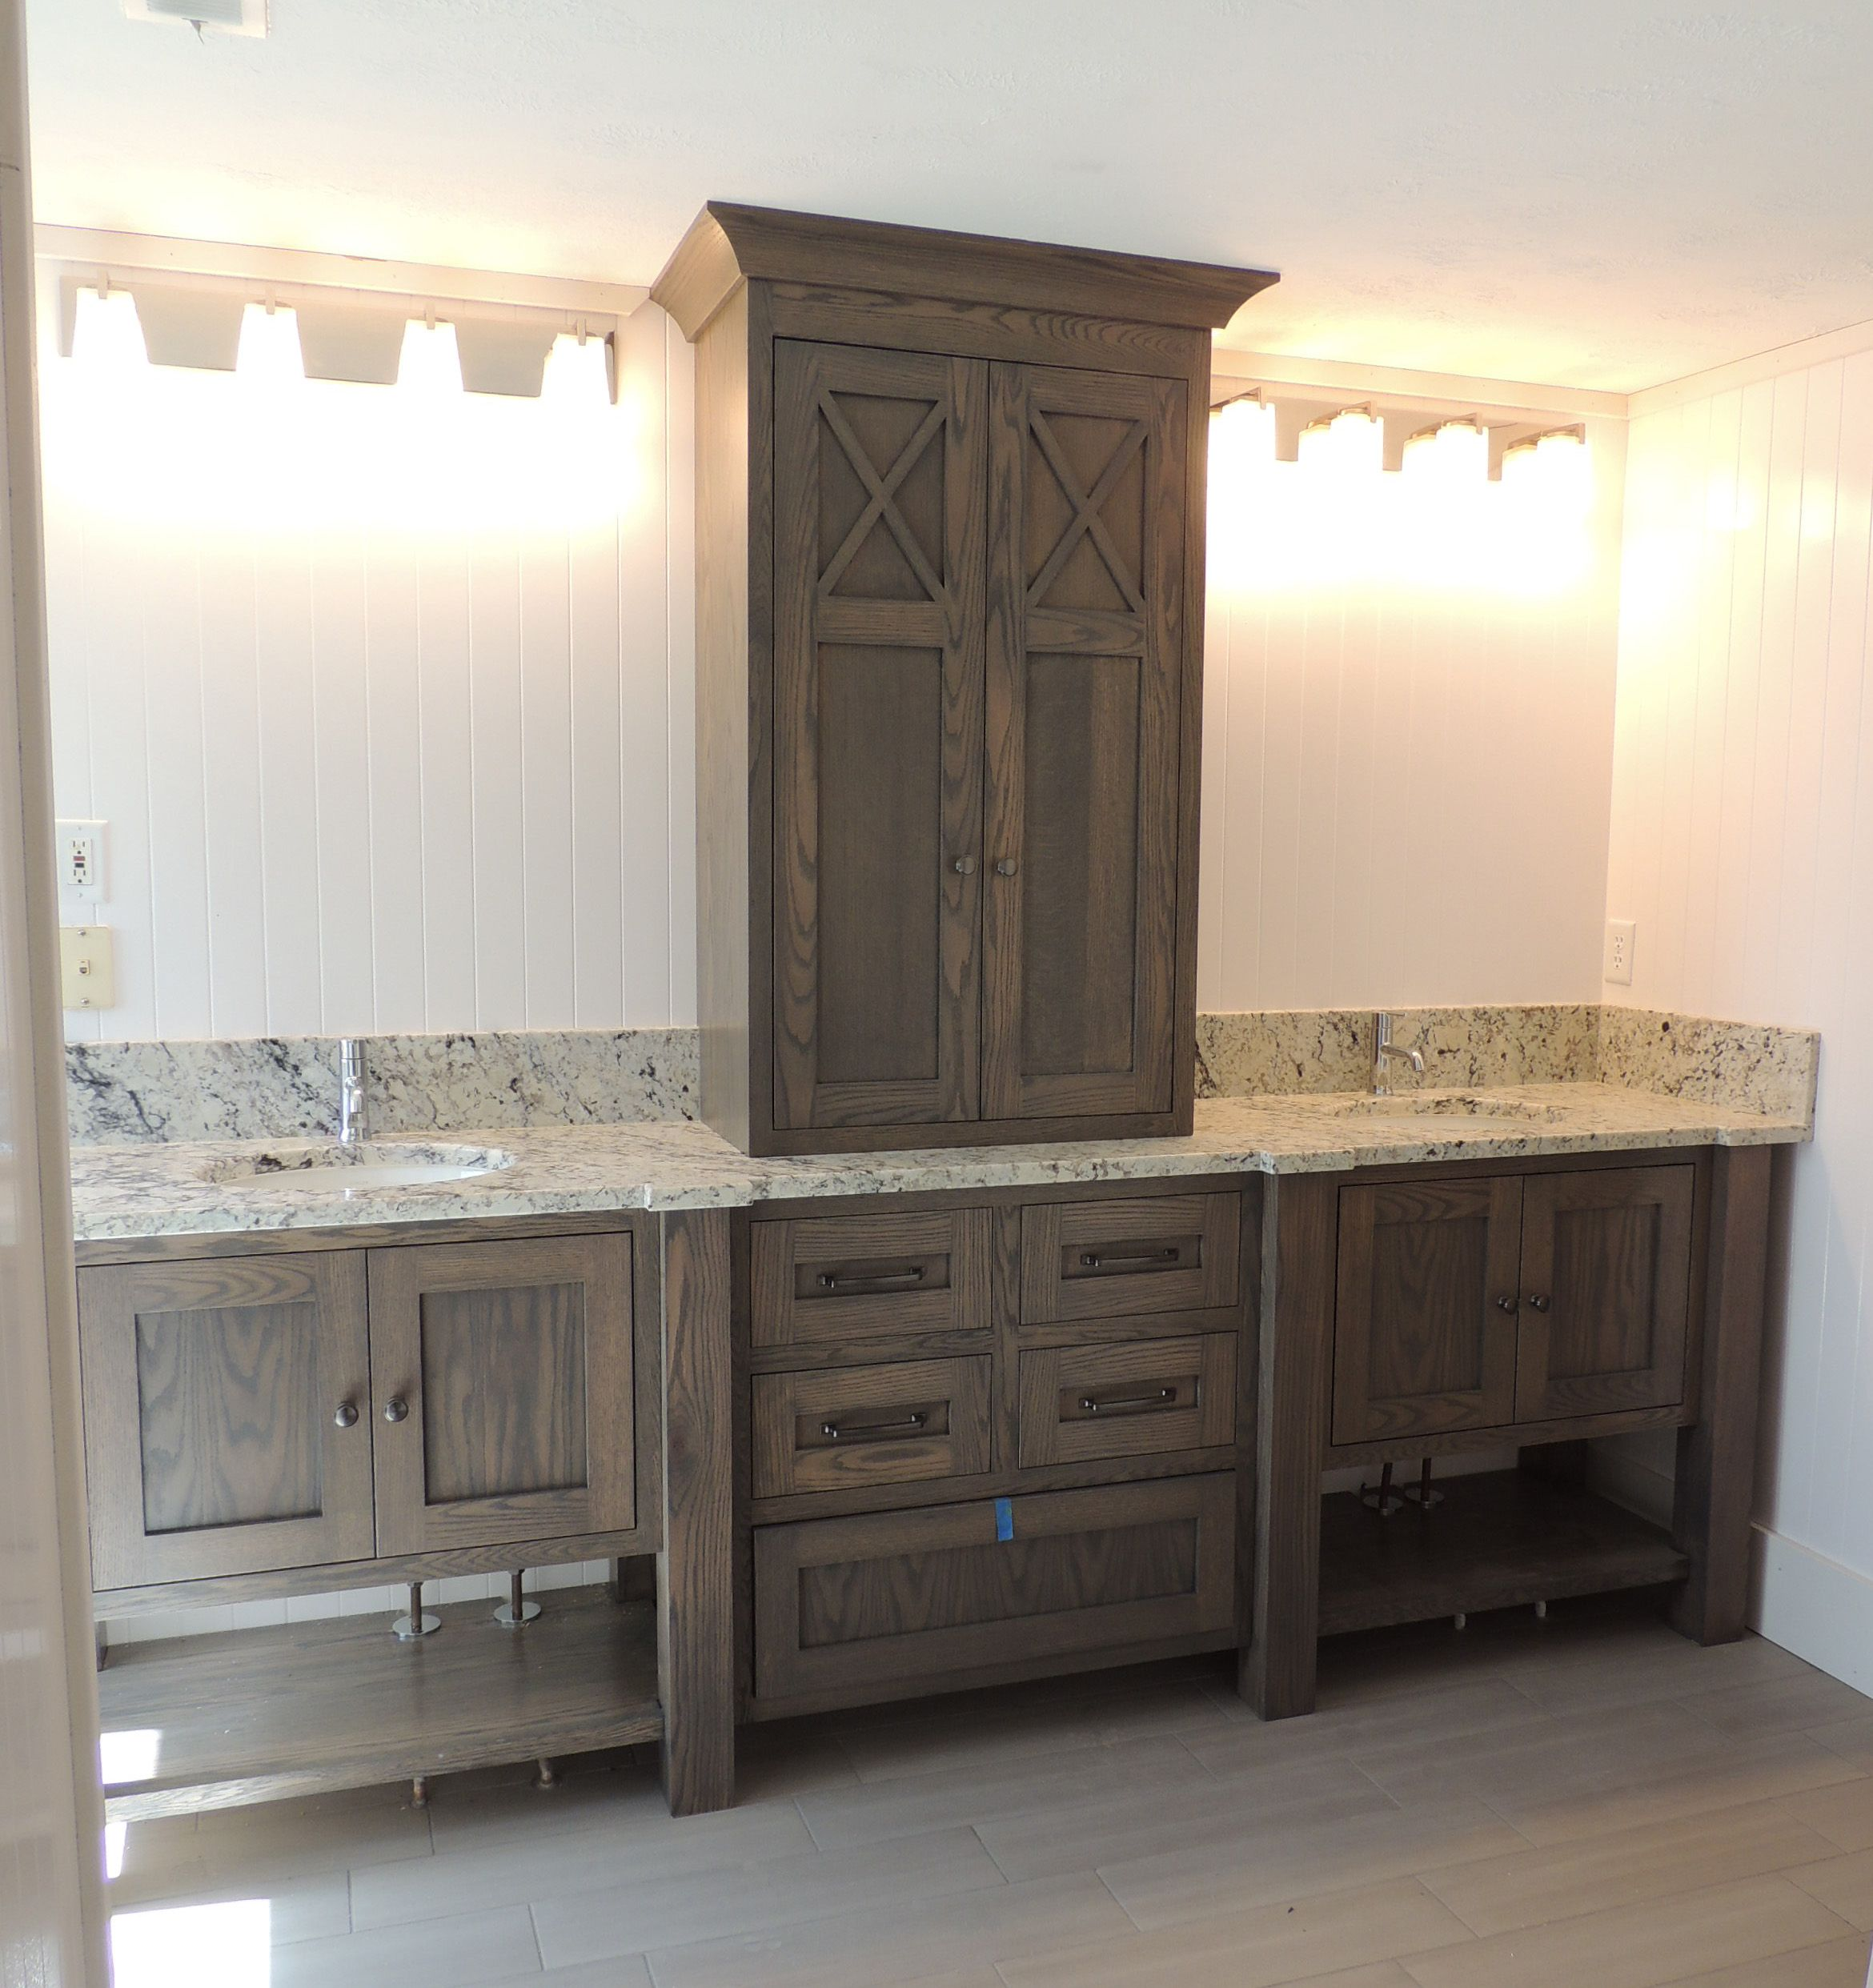 Furniture style bathroom vanity in white oak with grey brown stain my designs pinterest White bathroom vanity cabinets